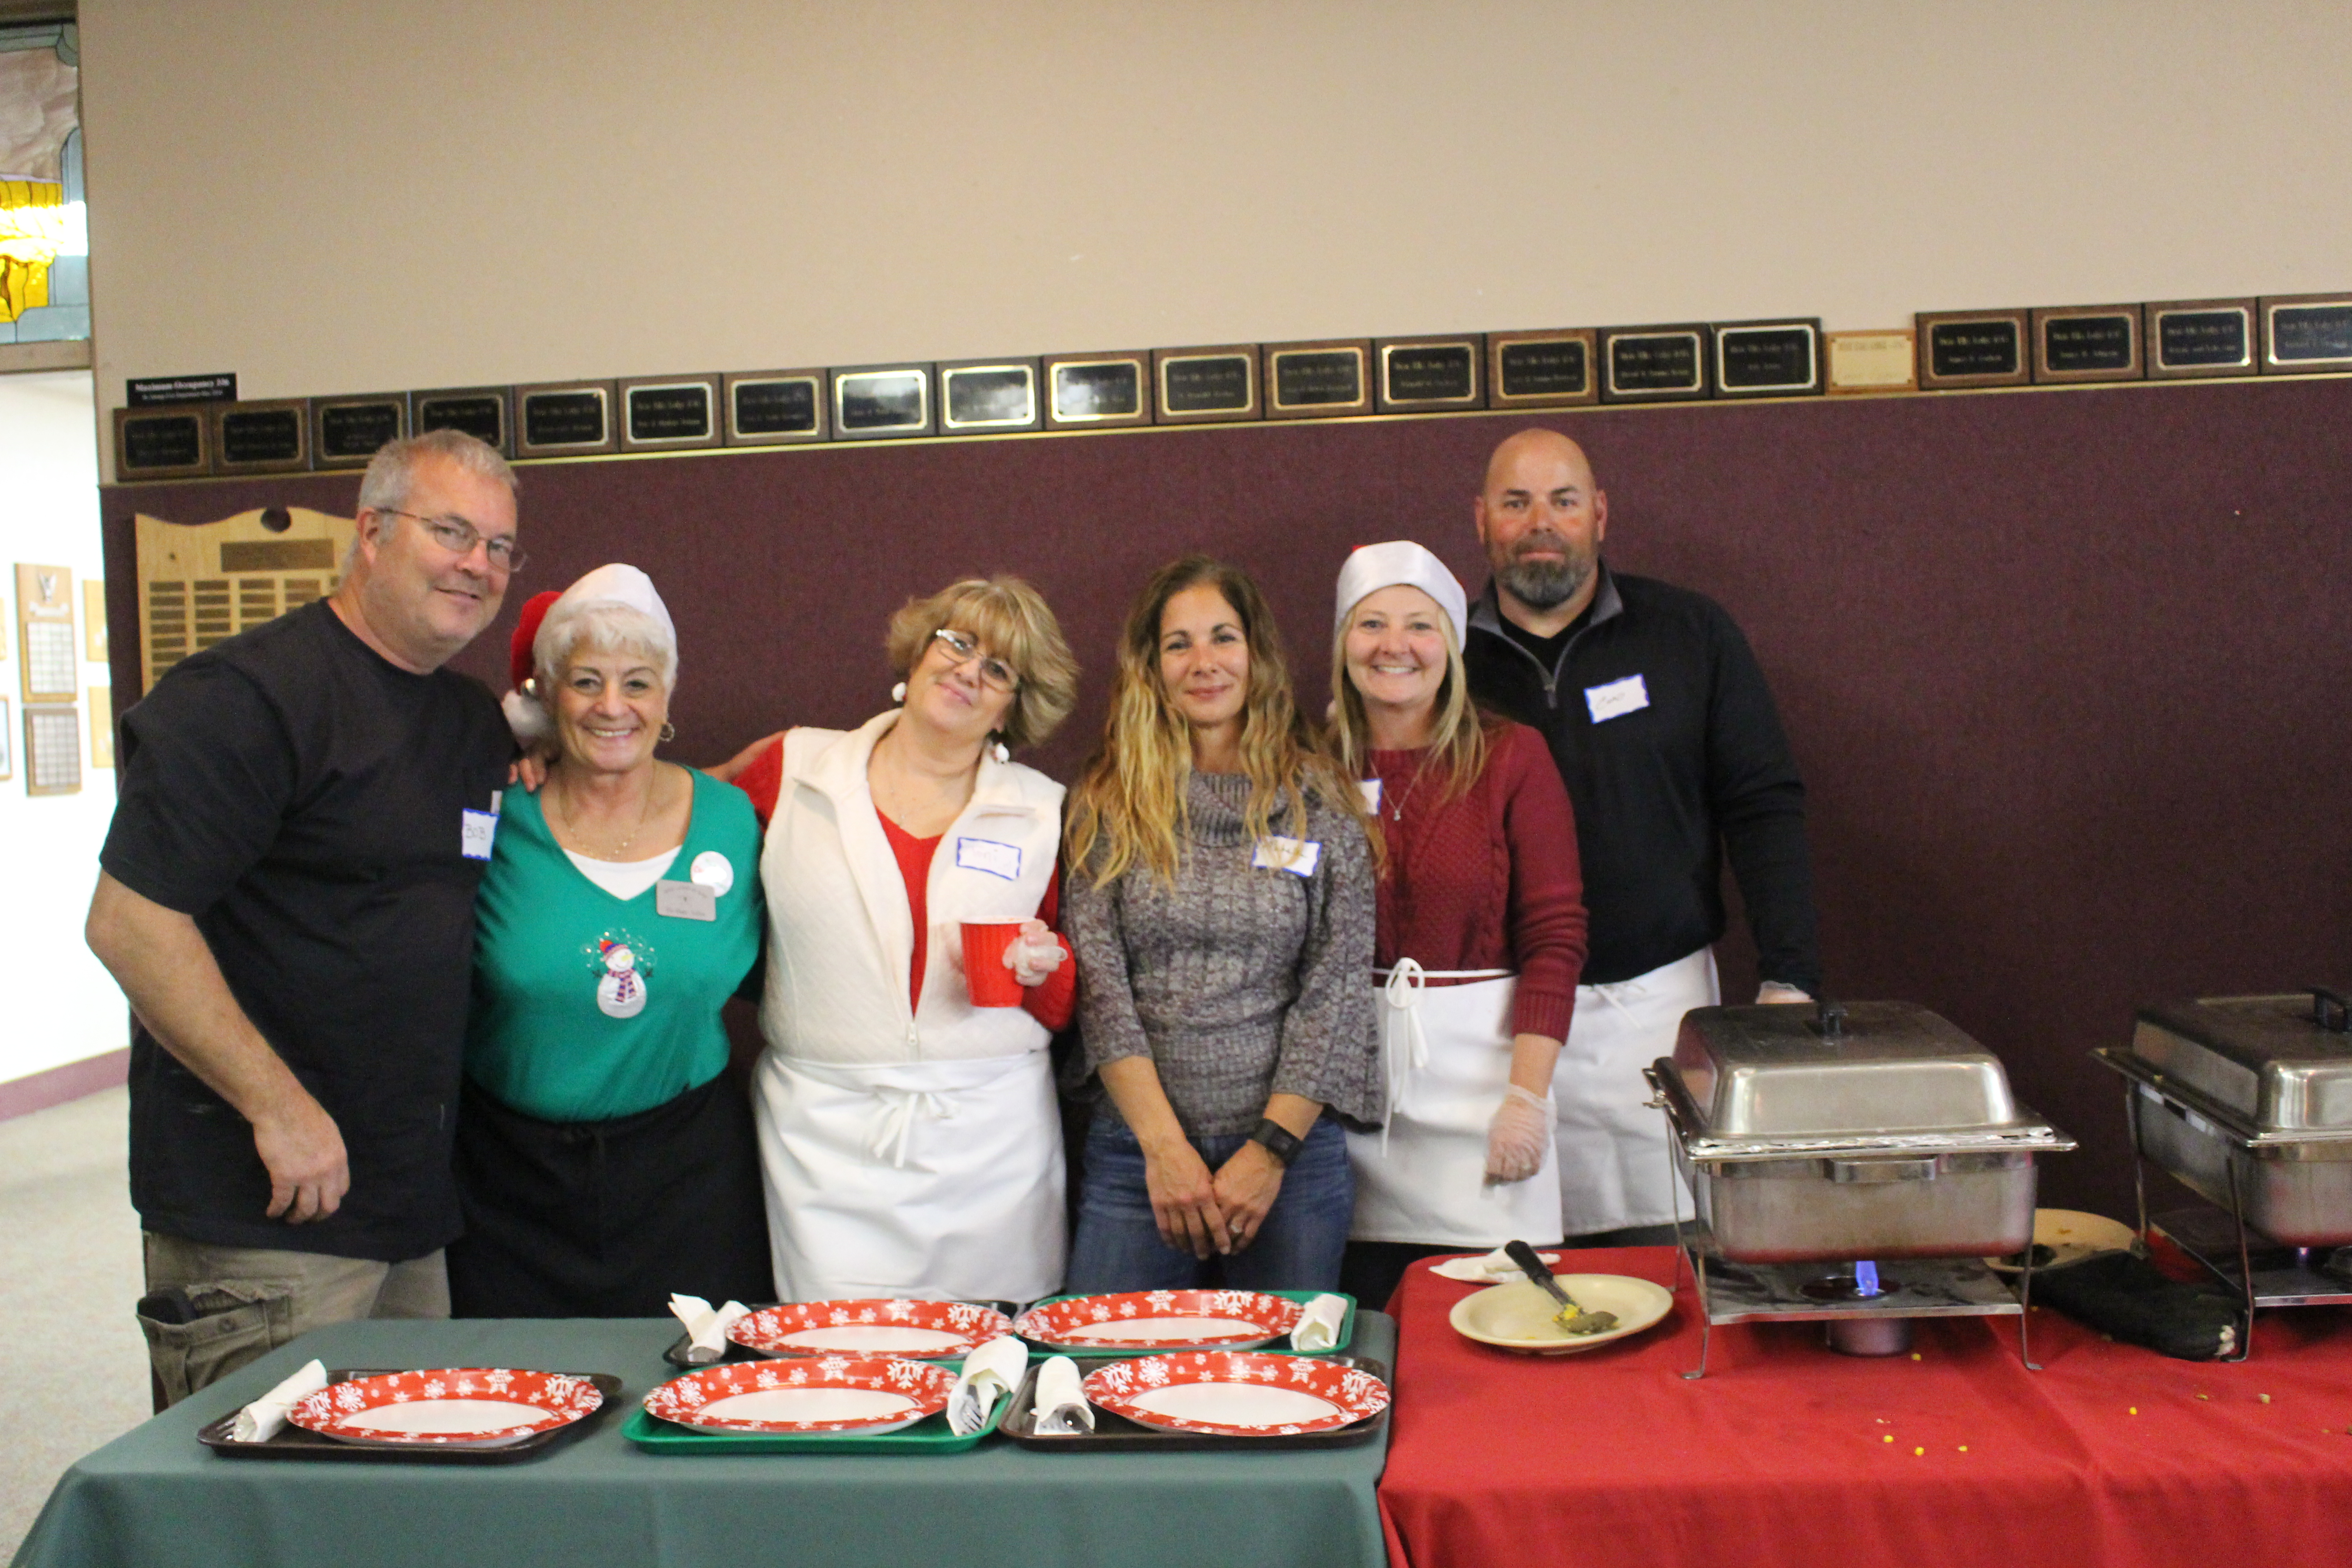 Dixie Elks Lodge 1743 members volunteer their time cooking and serving the Community Soup Kitchen's Christmas dinner to the homeless and less fortunate at the Dixie Elks Lodge in St. George, Utah, Dec. 25, 2016 | Photo by Cody Blowers, St. George News